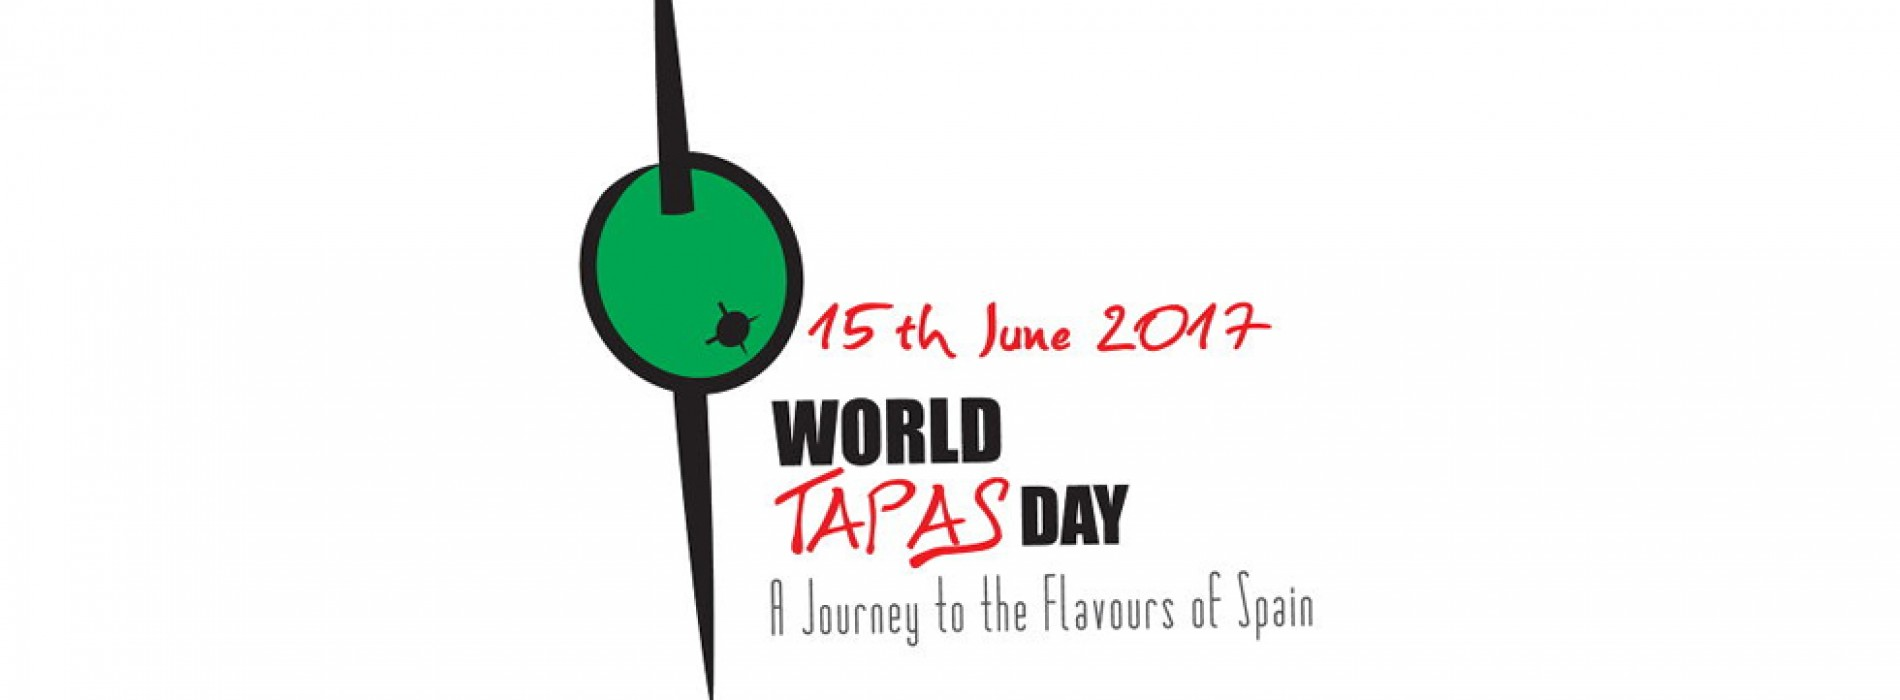 World Tapas Day – A Journey to the Flavors of Spain